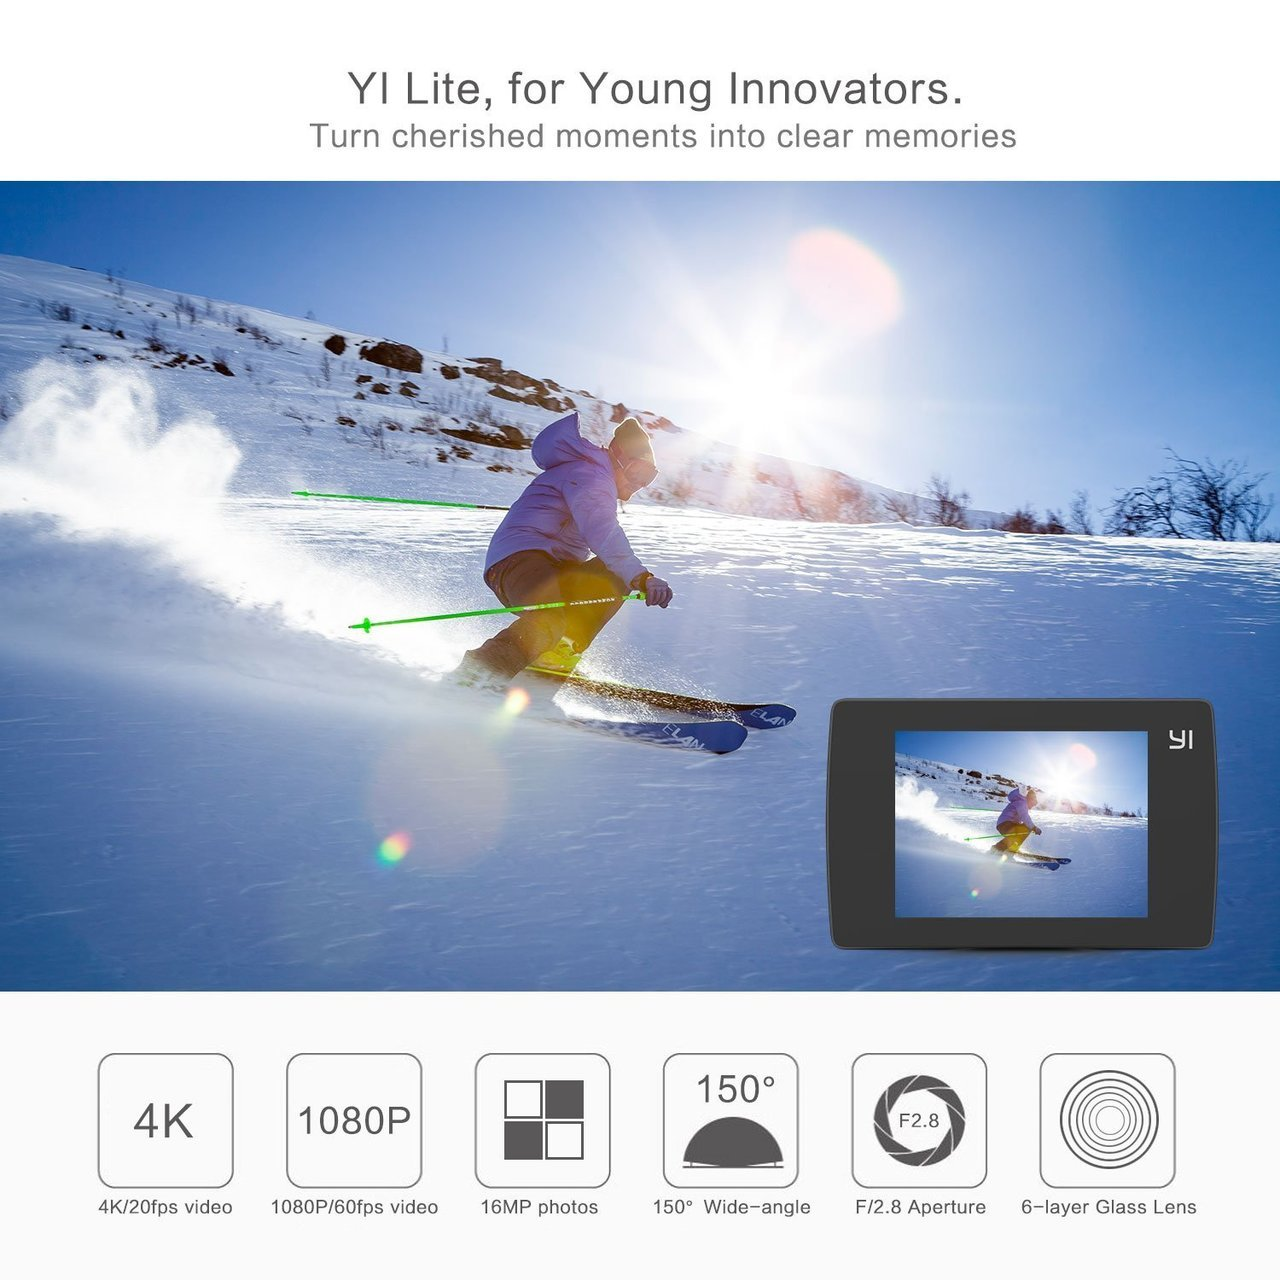 Yi Lite Action Camera with Waterproof Case Included - Black